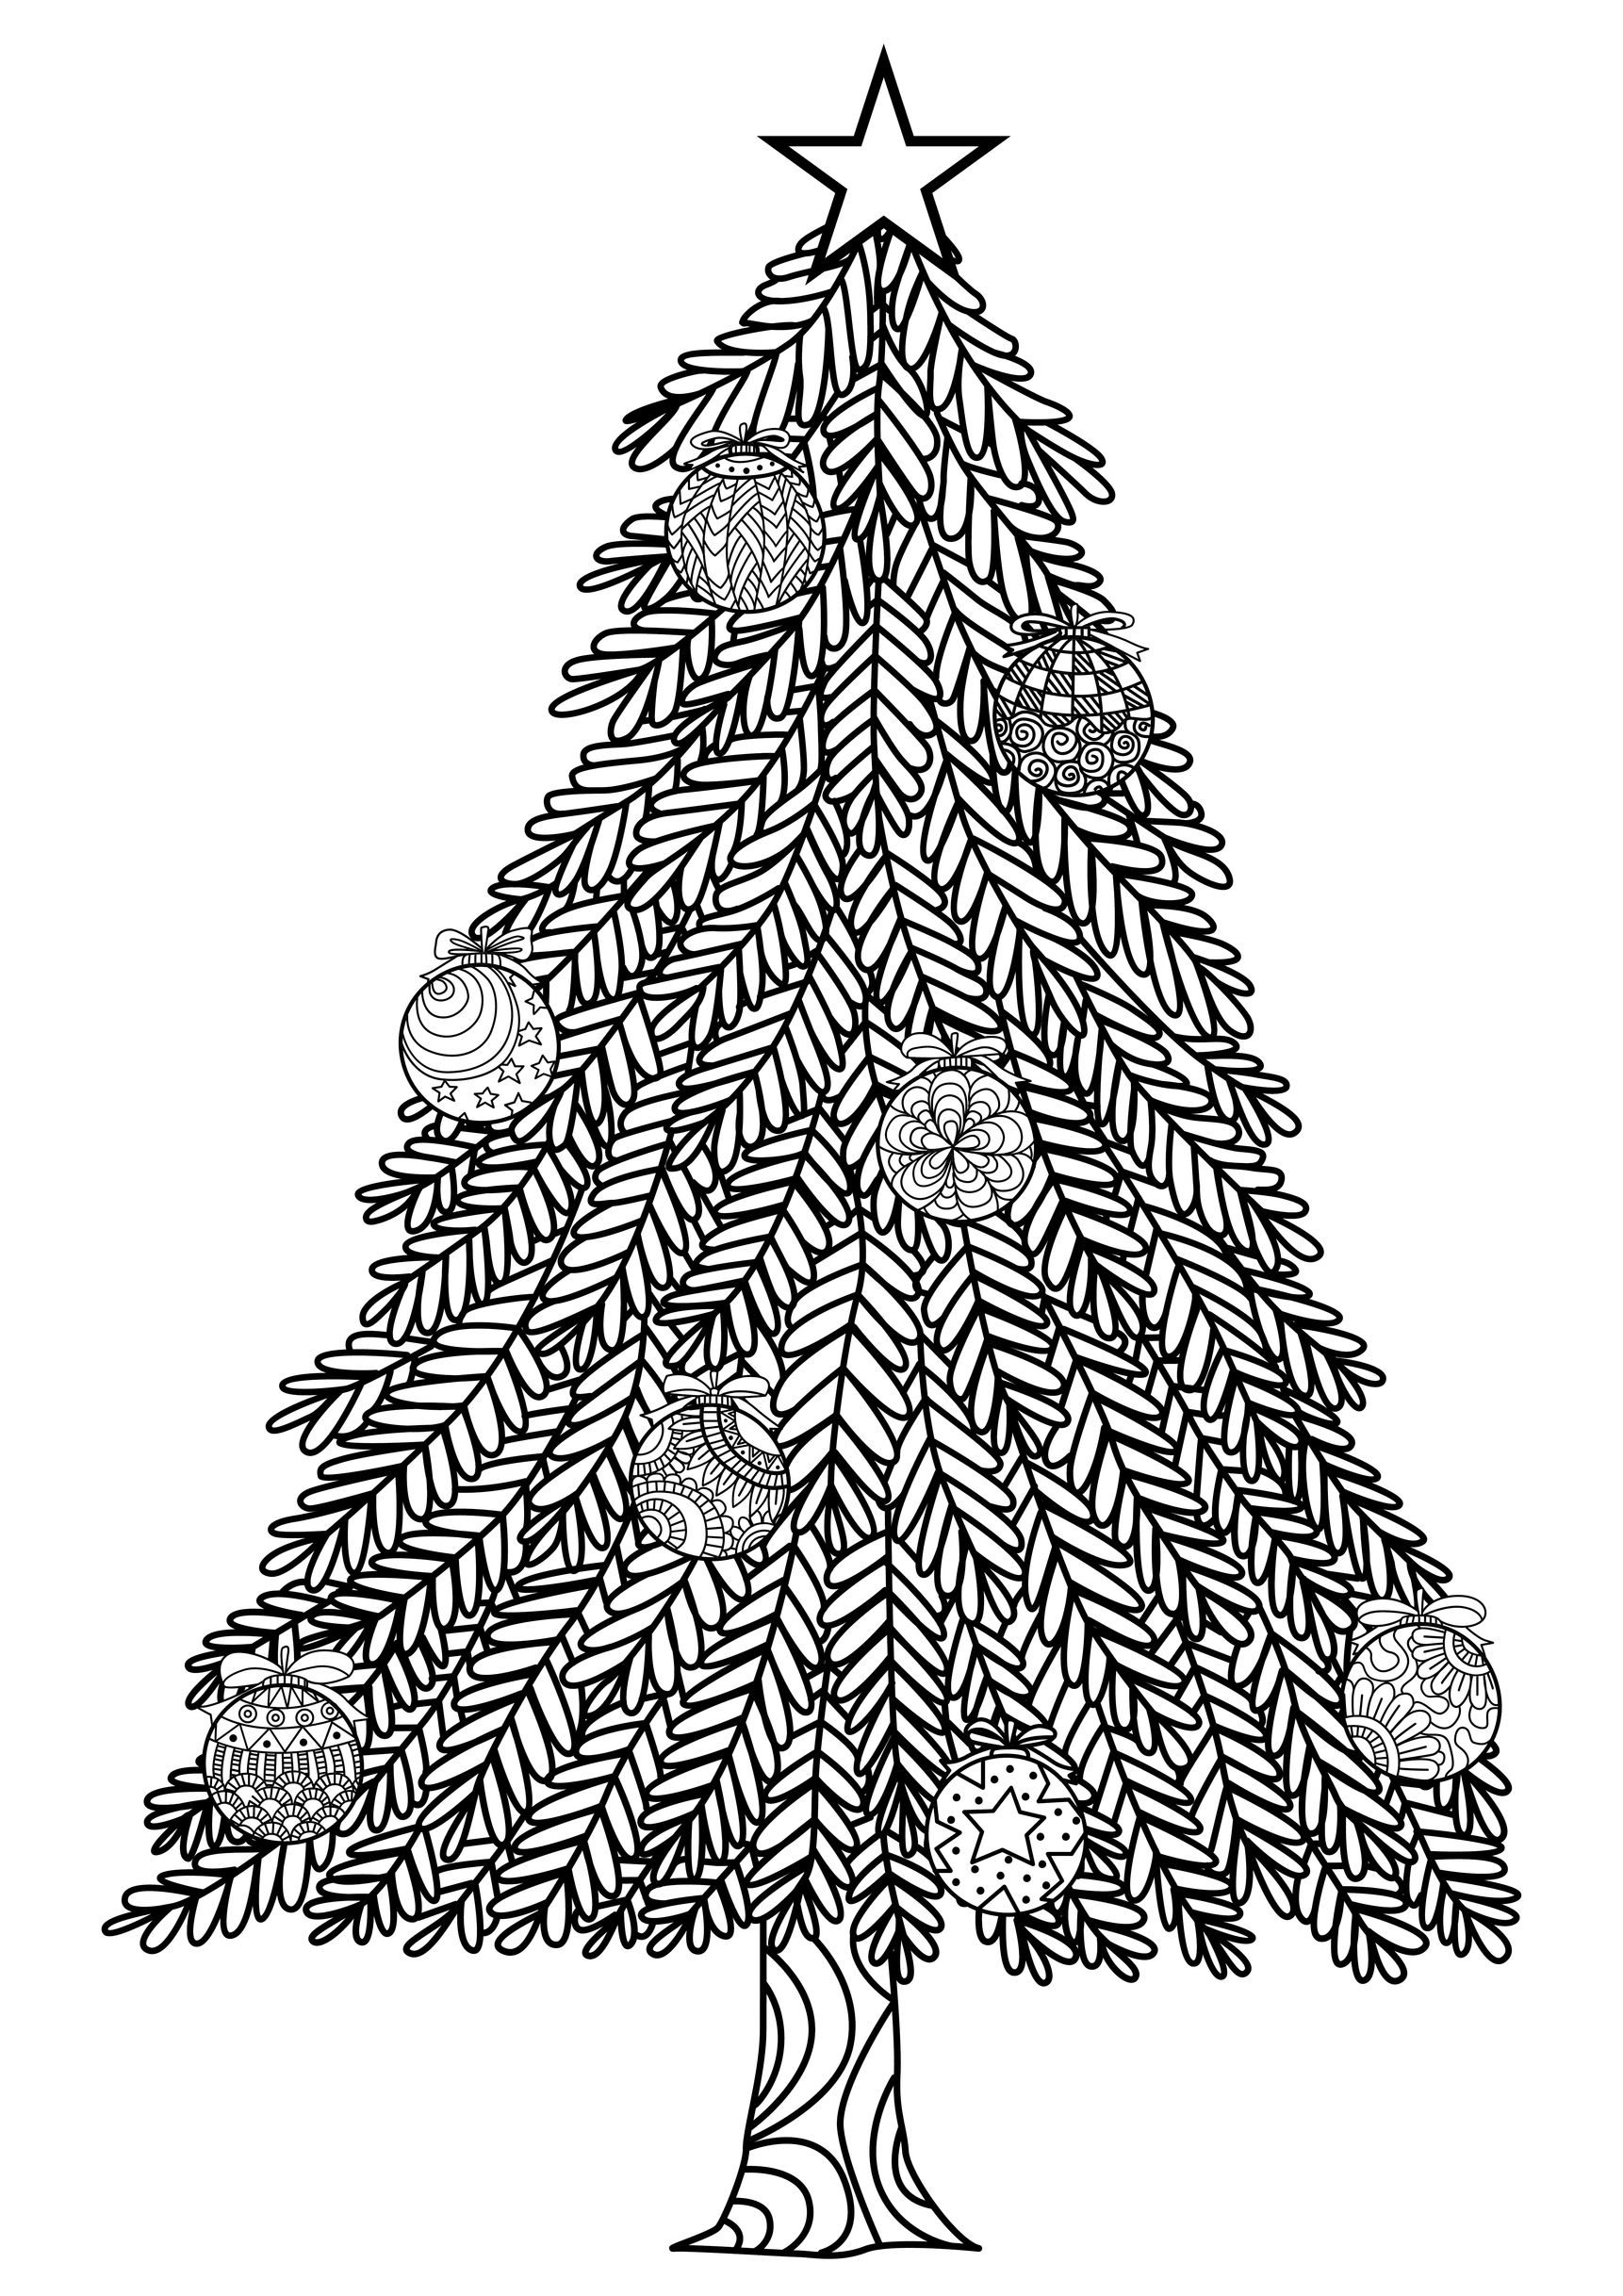 48246496 - hand drawn christmas tree zentangle style with christmas balls and gift boxes.A partir de la galerie : Noel